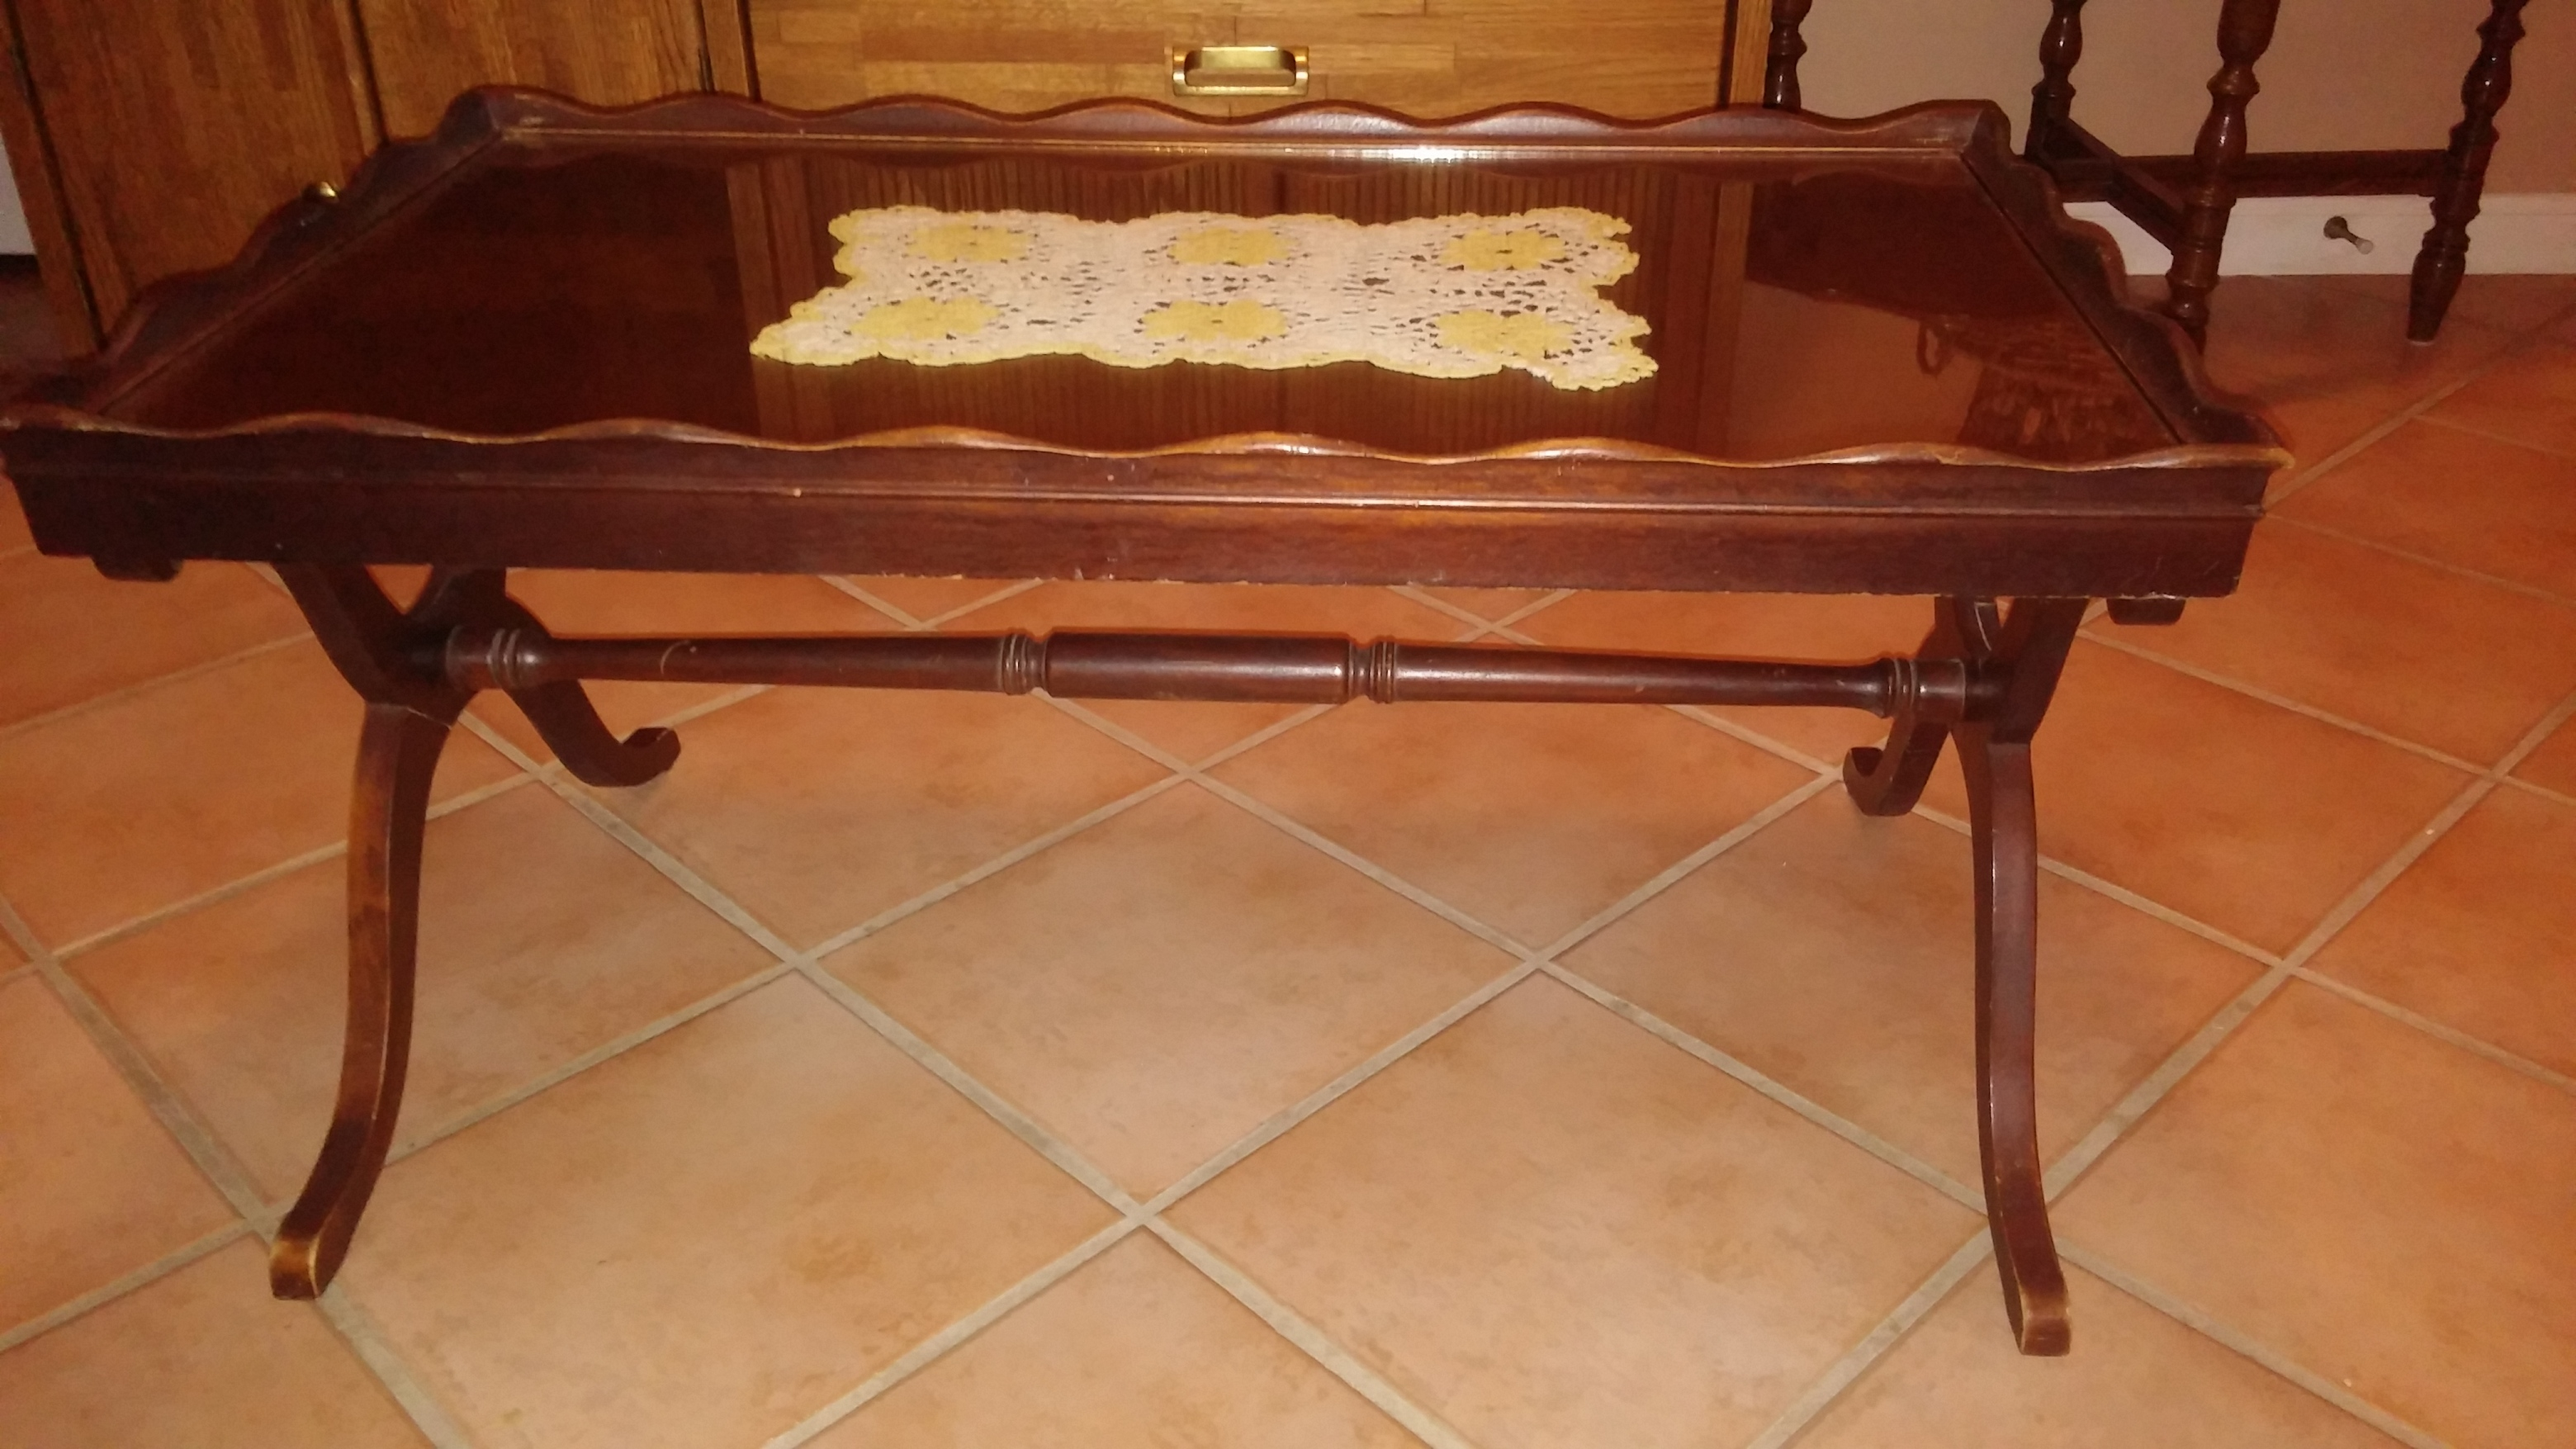 antique coffee table, removable glass top for display